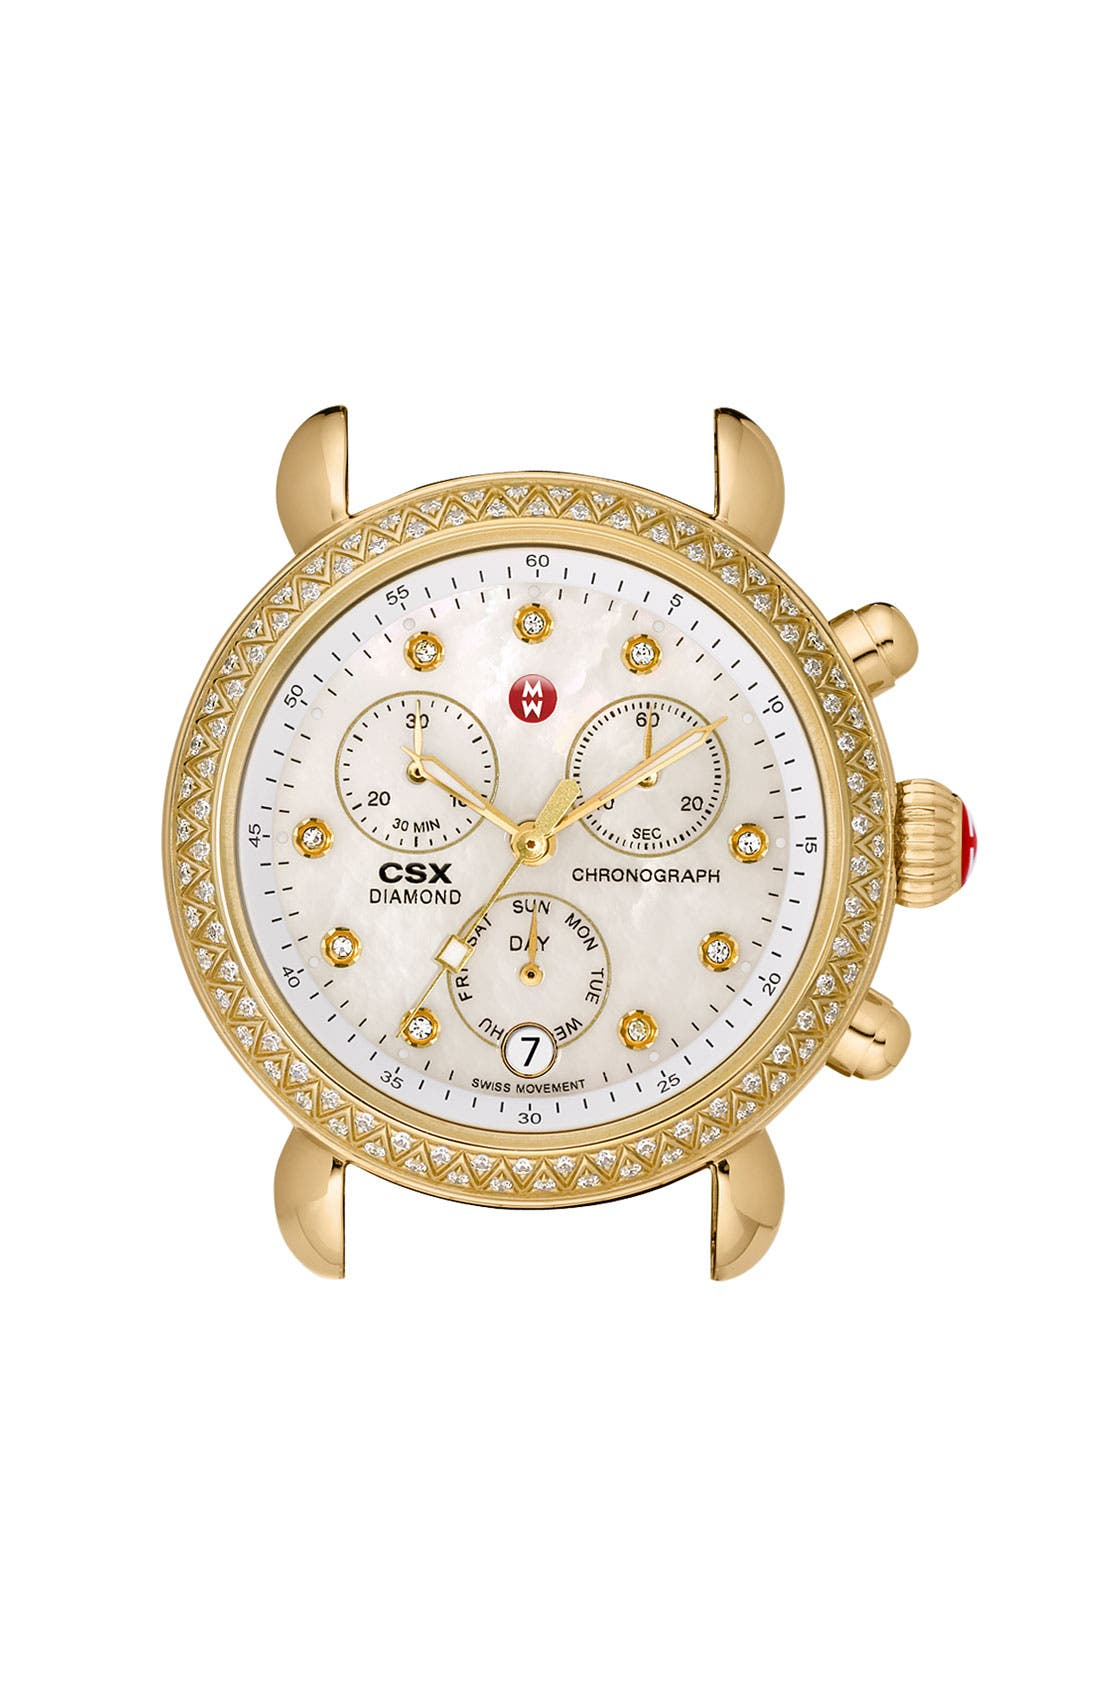 Alternate Image 1 Selected - MICHELE 'CSX-36 Diamond' Diamond Dial Gold Plated Watch Case, 36mm